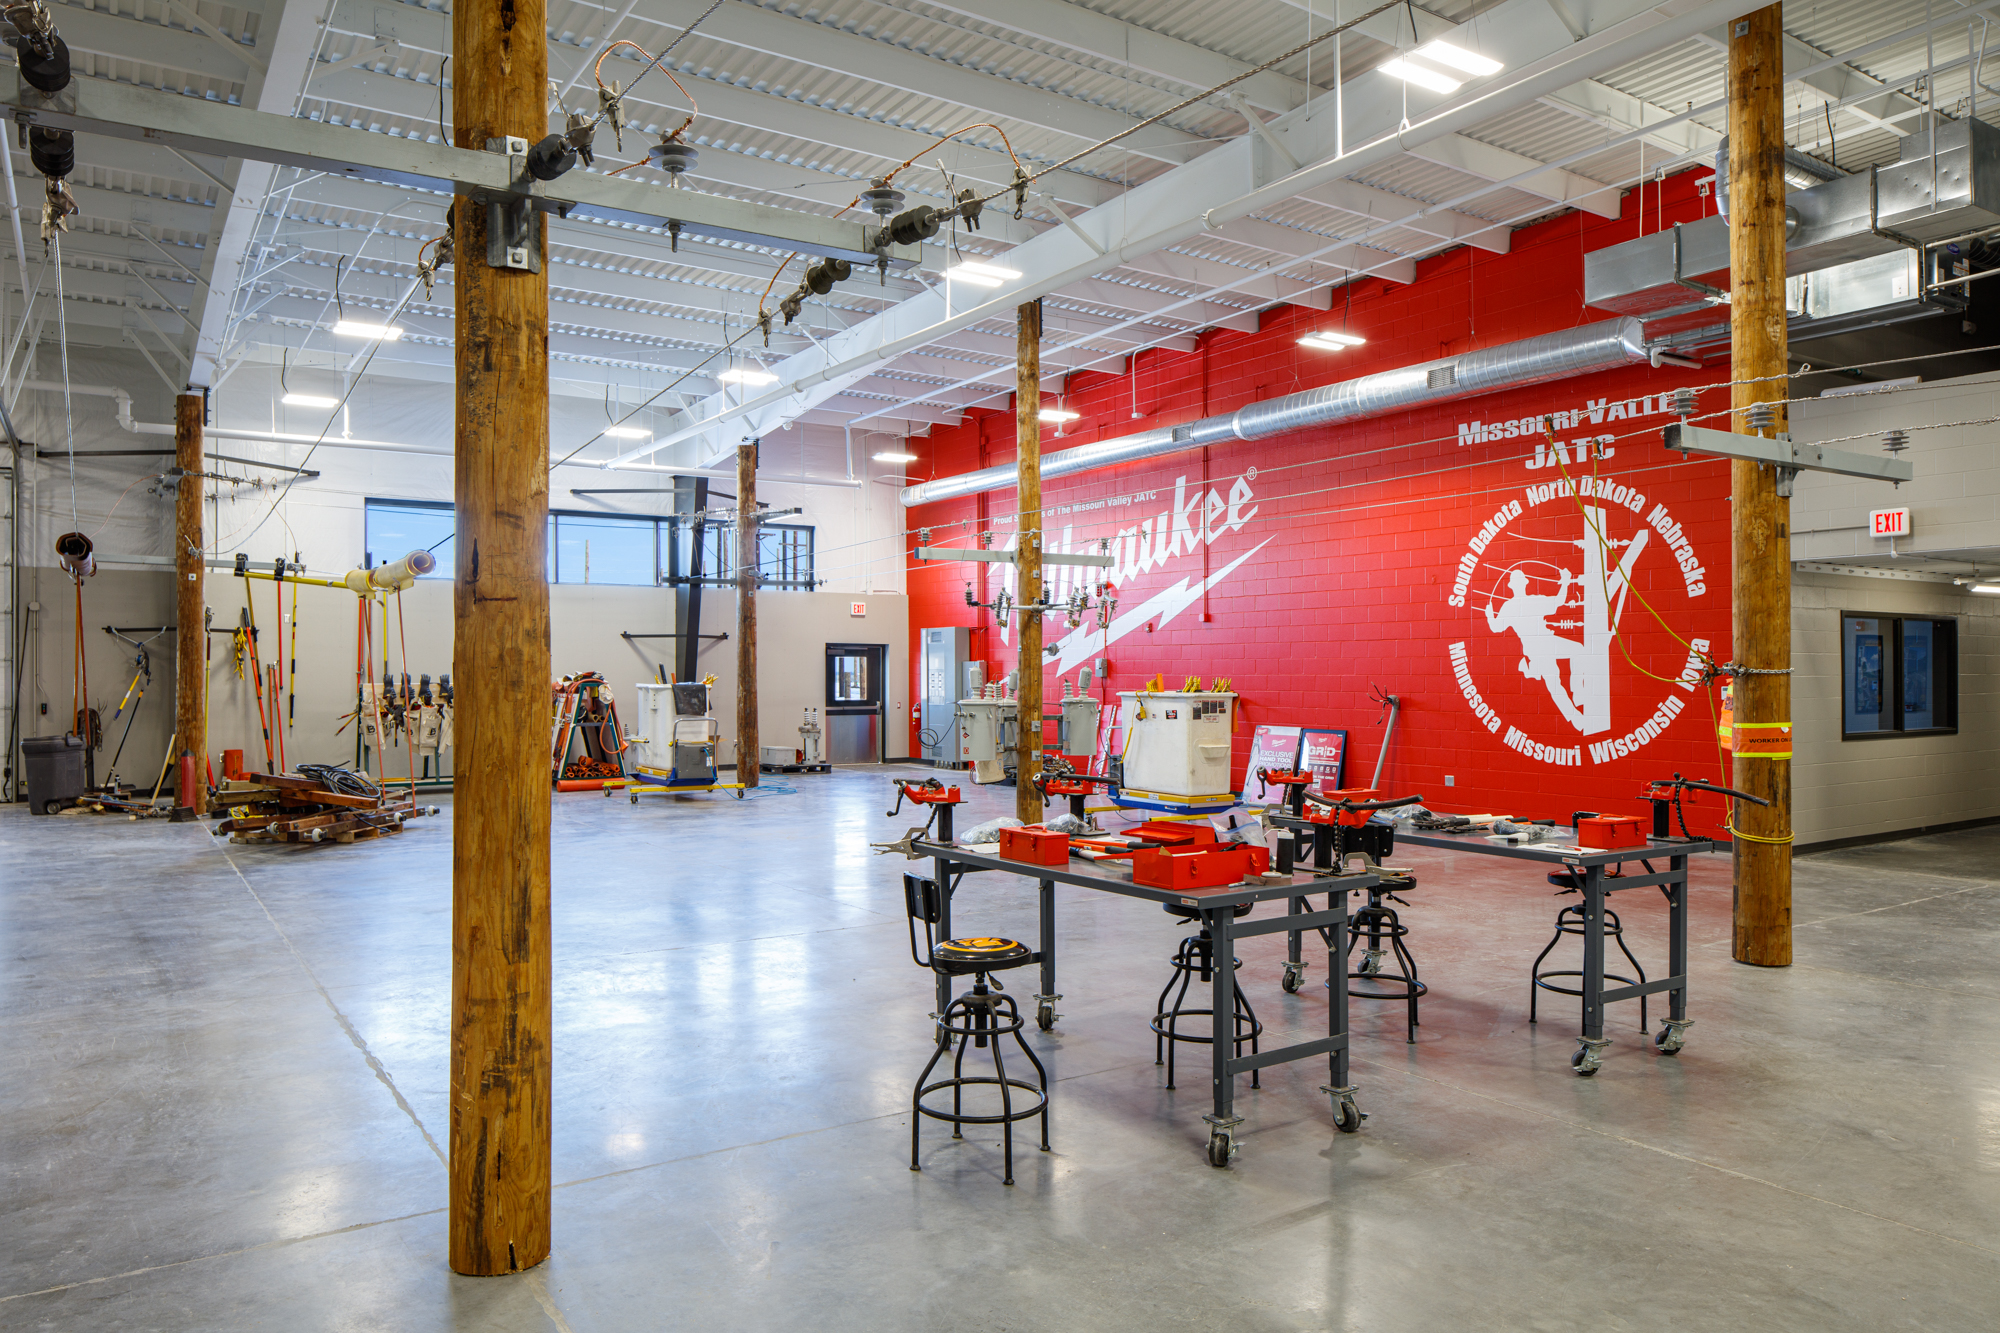 Interior of Missouri Valley JATC showing the maintenance shop with a red feature wall that has a white MVJATC logo. Work tables, open space, and lots of tools.